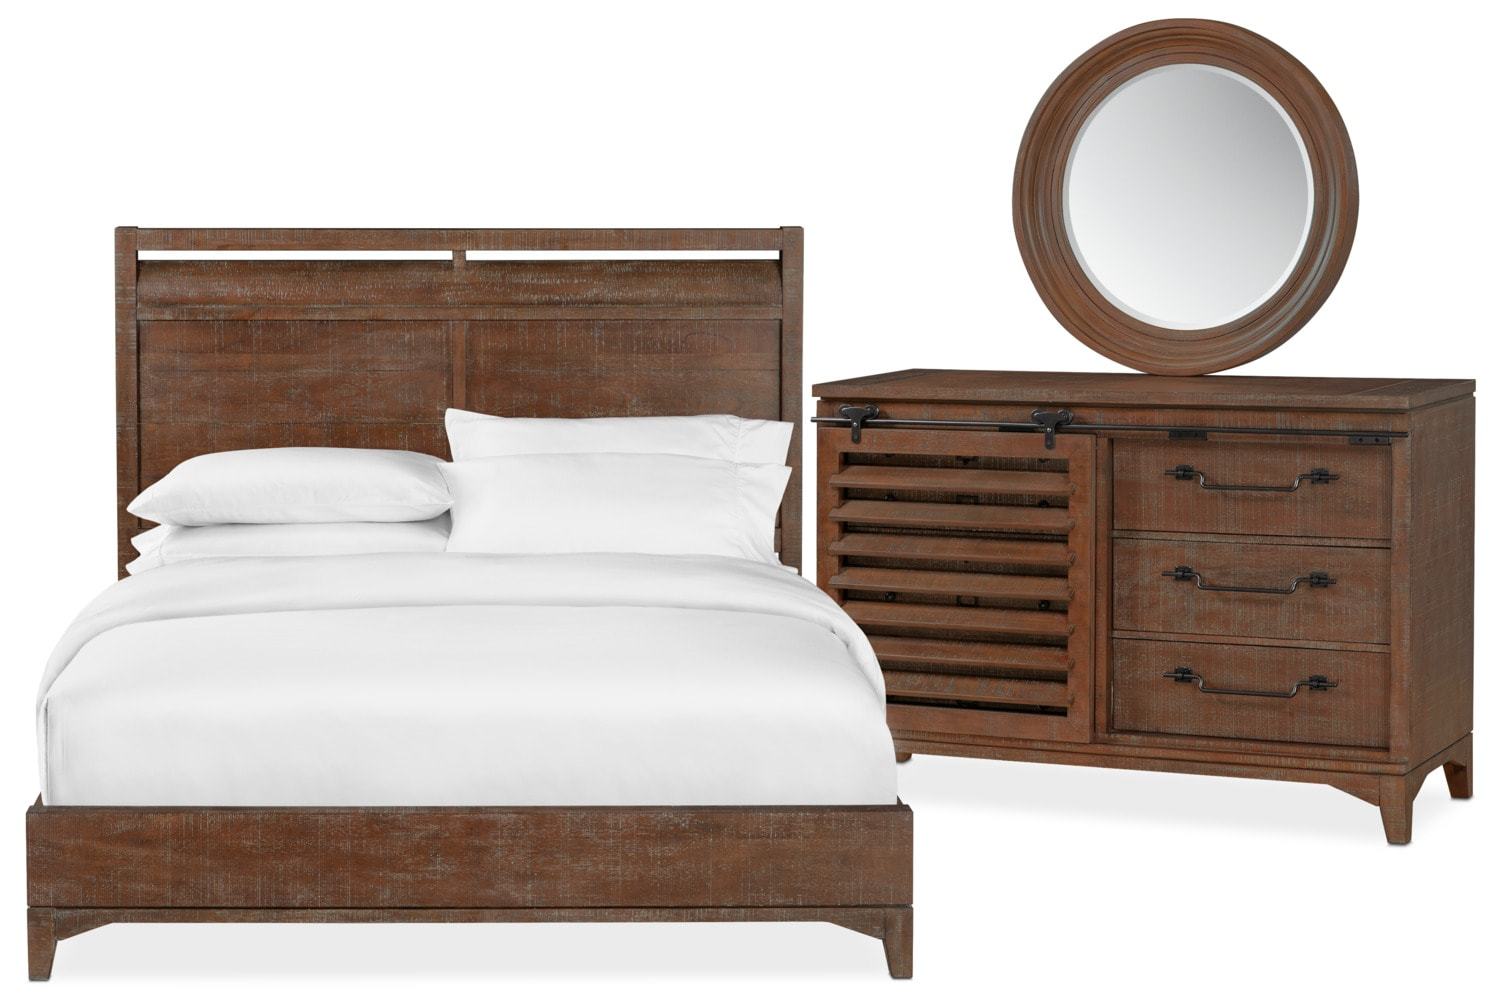 Bedroom Furniture - Gristmill 5-Piece Bedroom Set with Dresser and Mirror